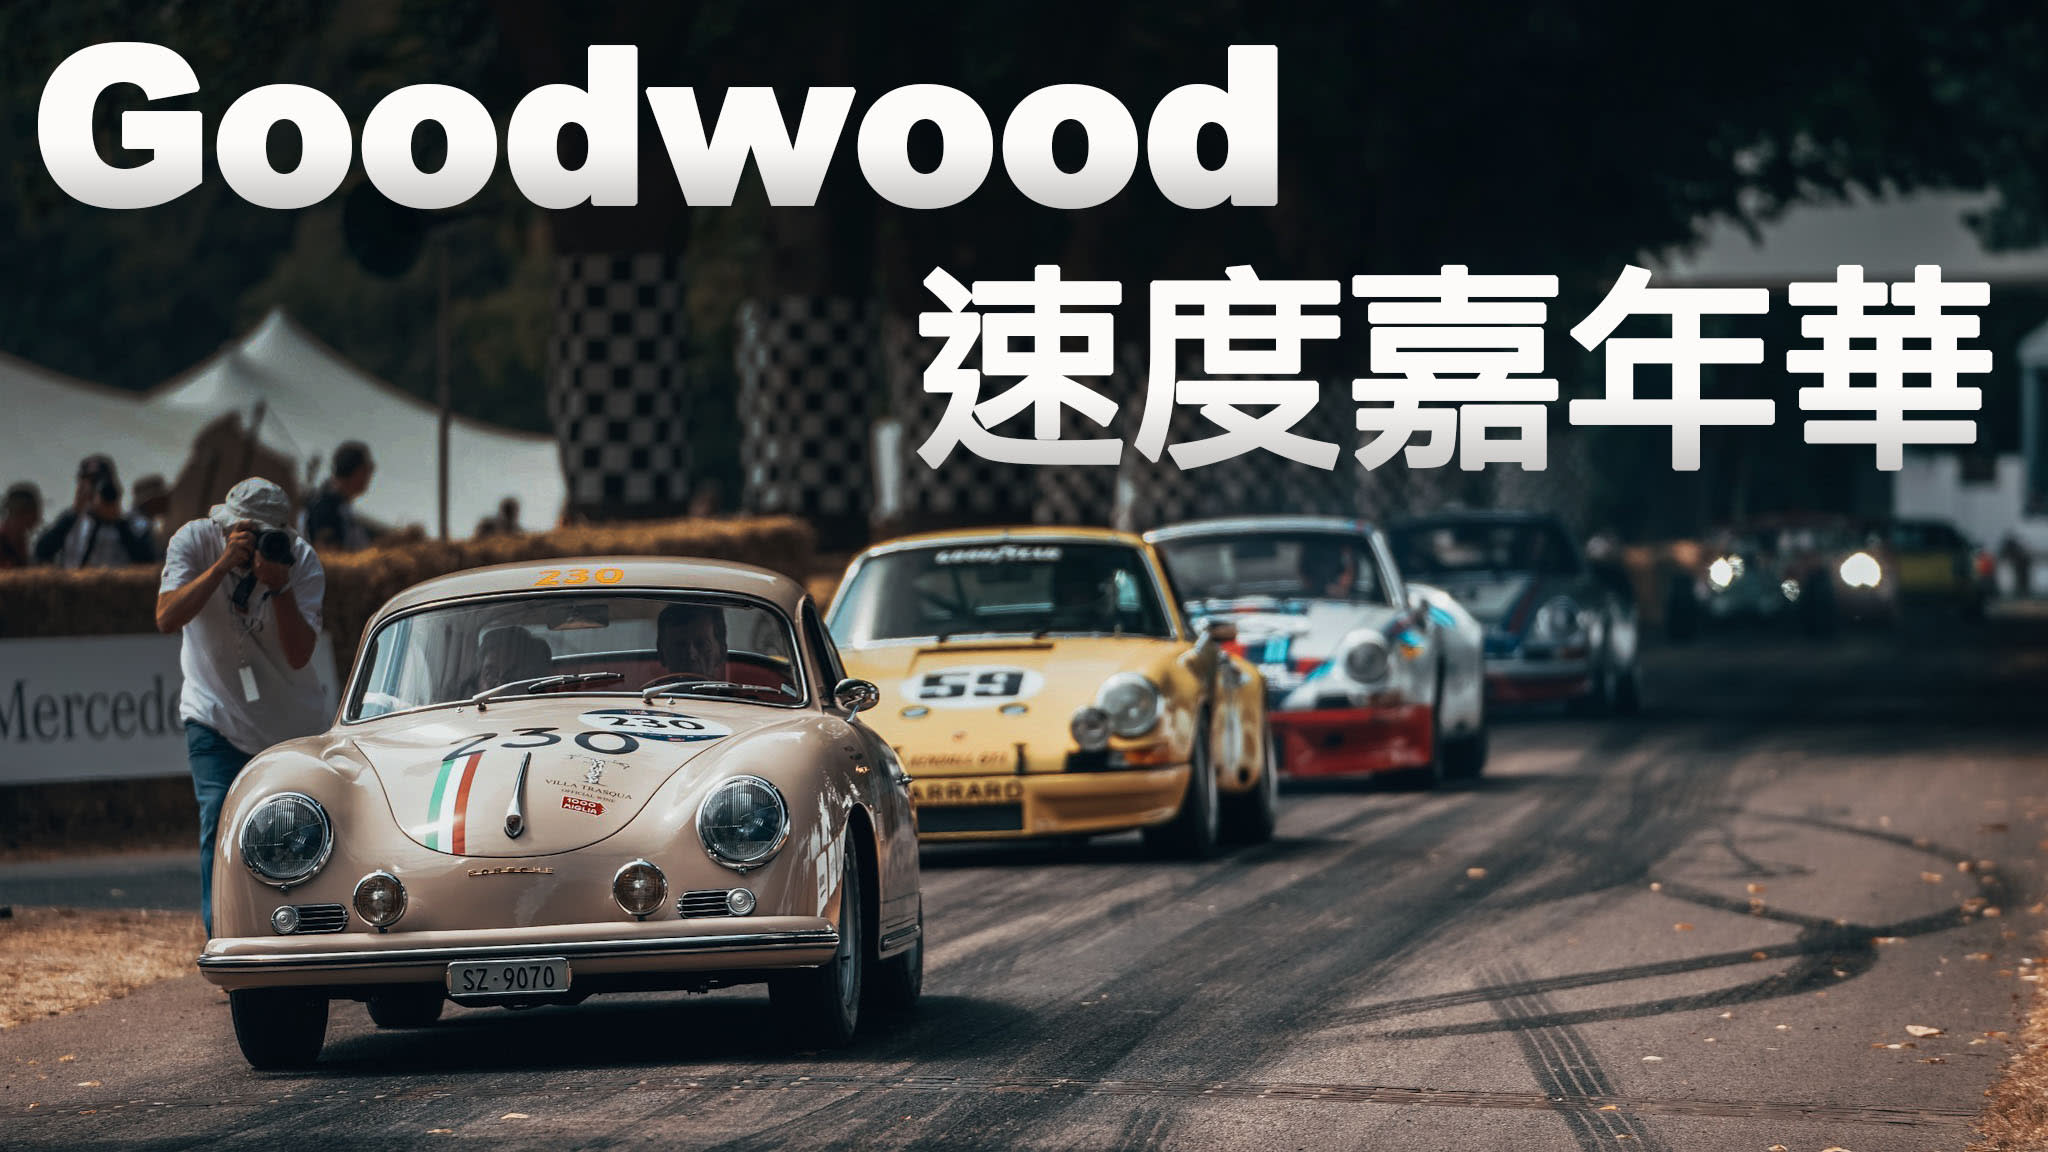 時代的淬煉|Goodwood 速度嘉年華|特別報導